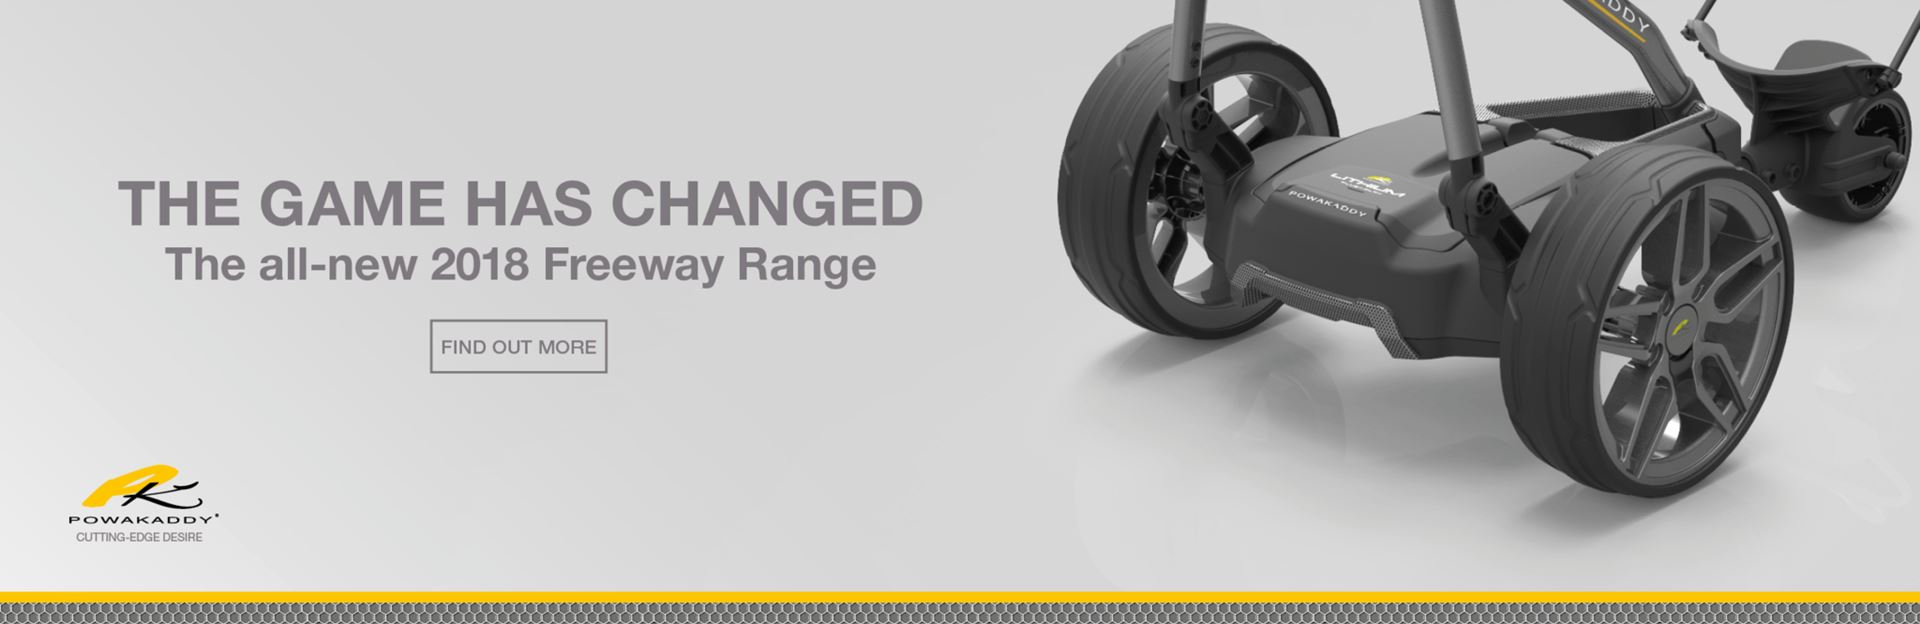 New Powakaddy Freeway Range